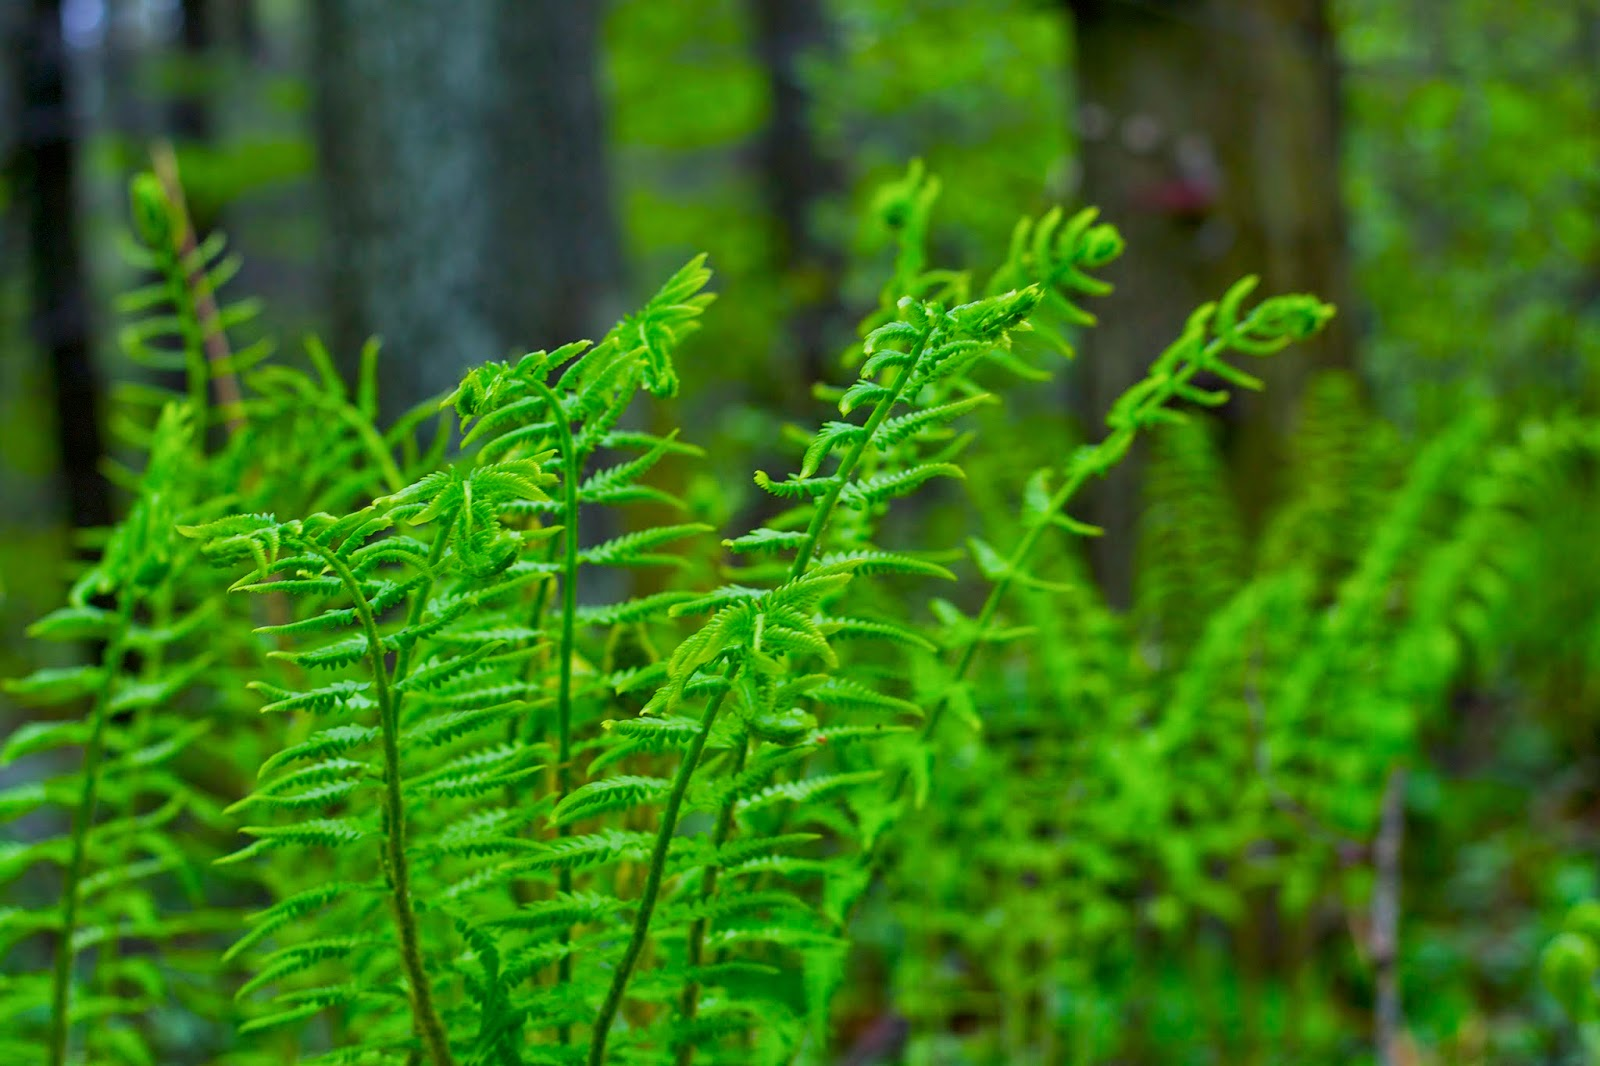 Vibrant green ferns.